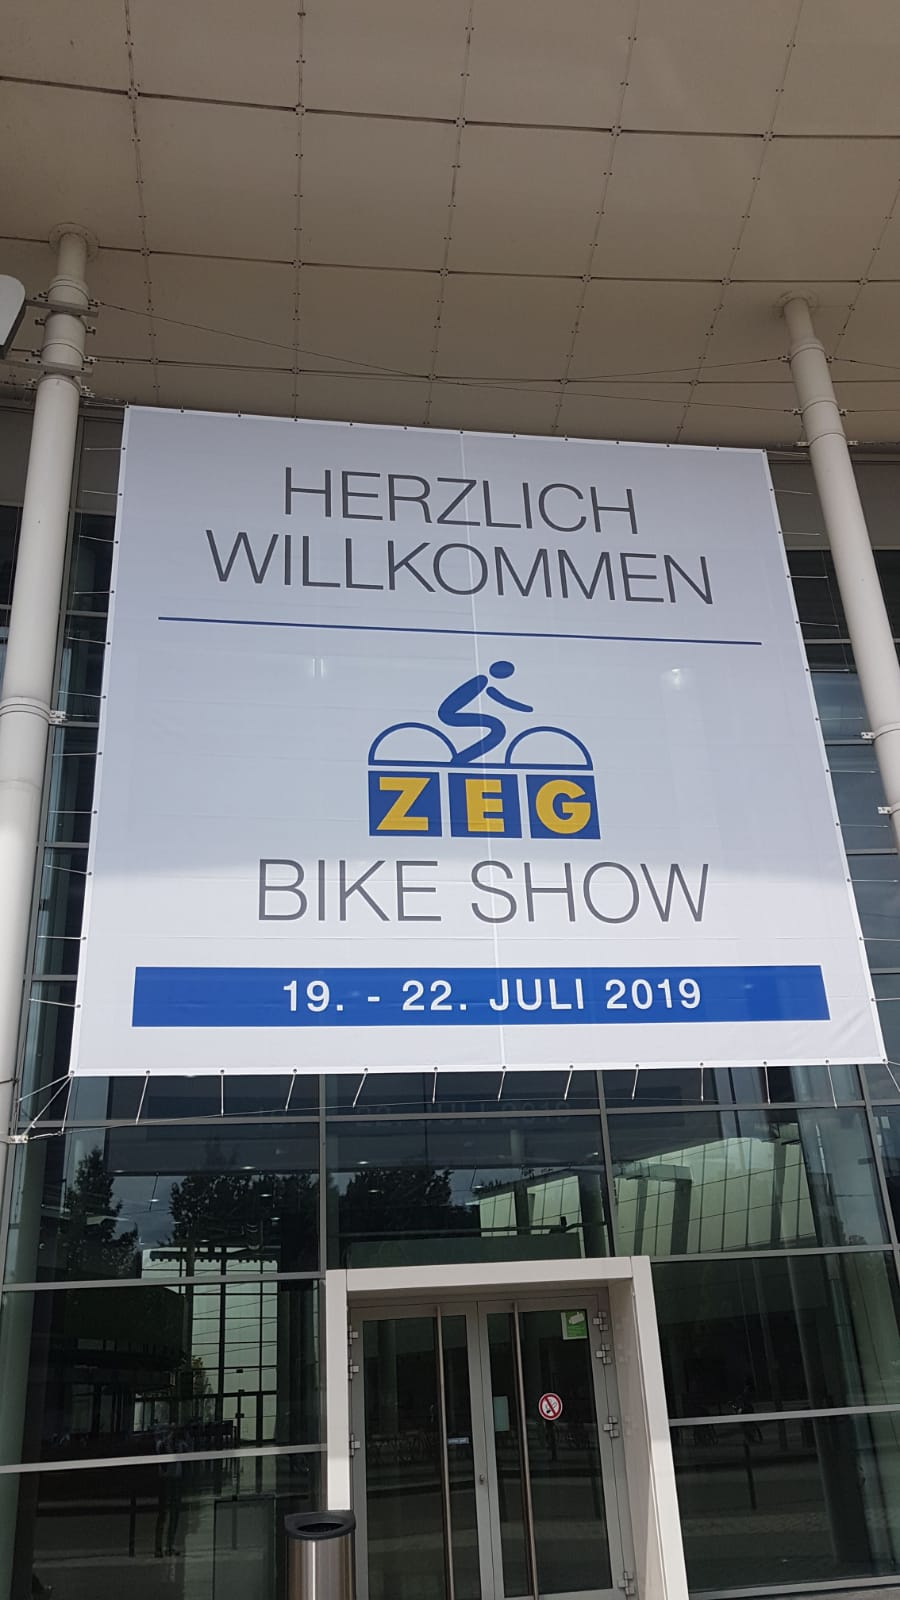 ESB_bike_ZEG_bike_show_BULLS_connected_ebikes